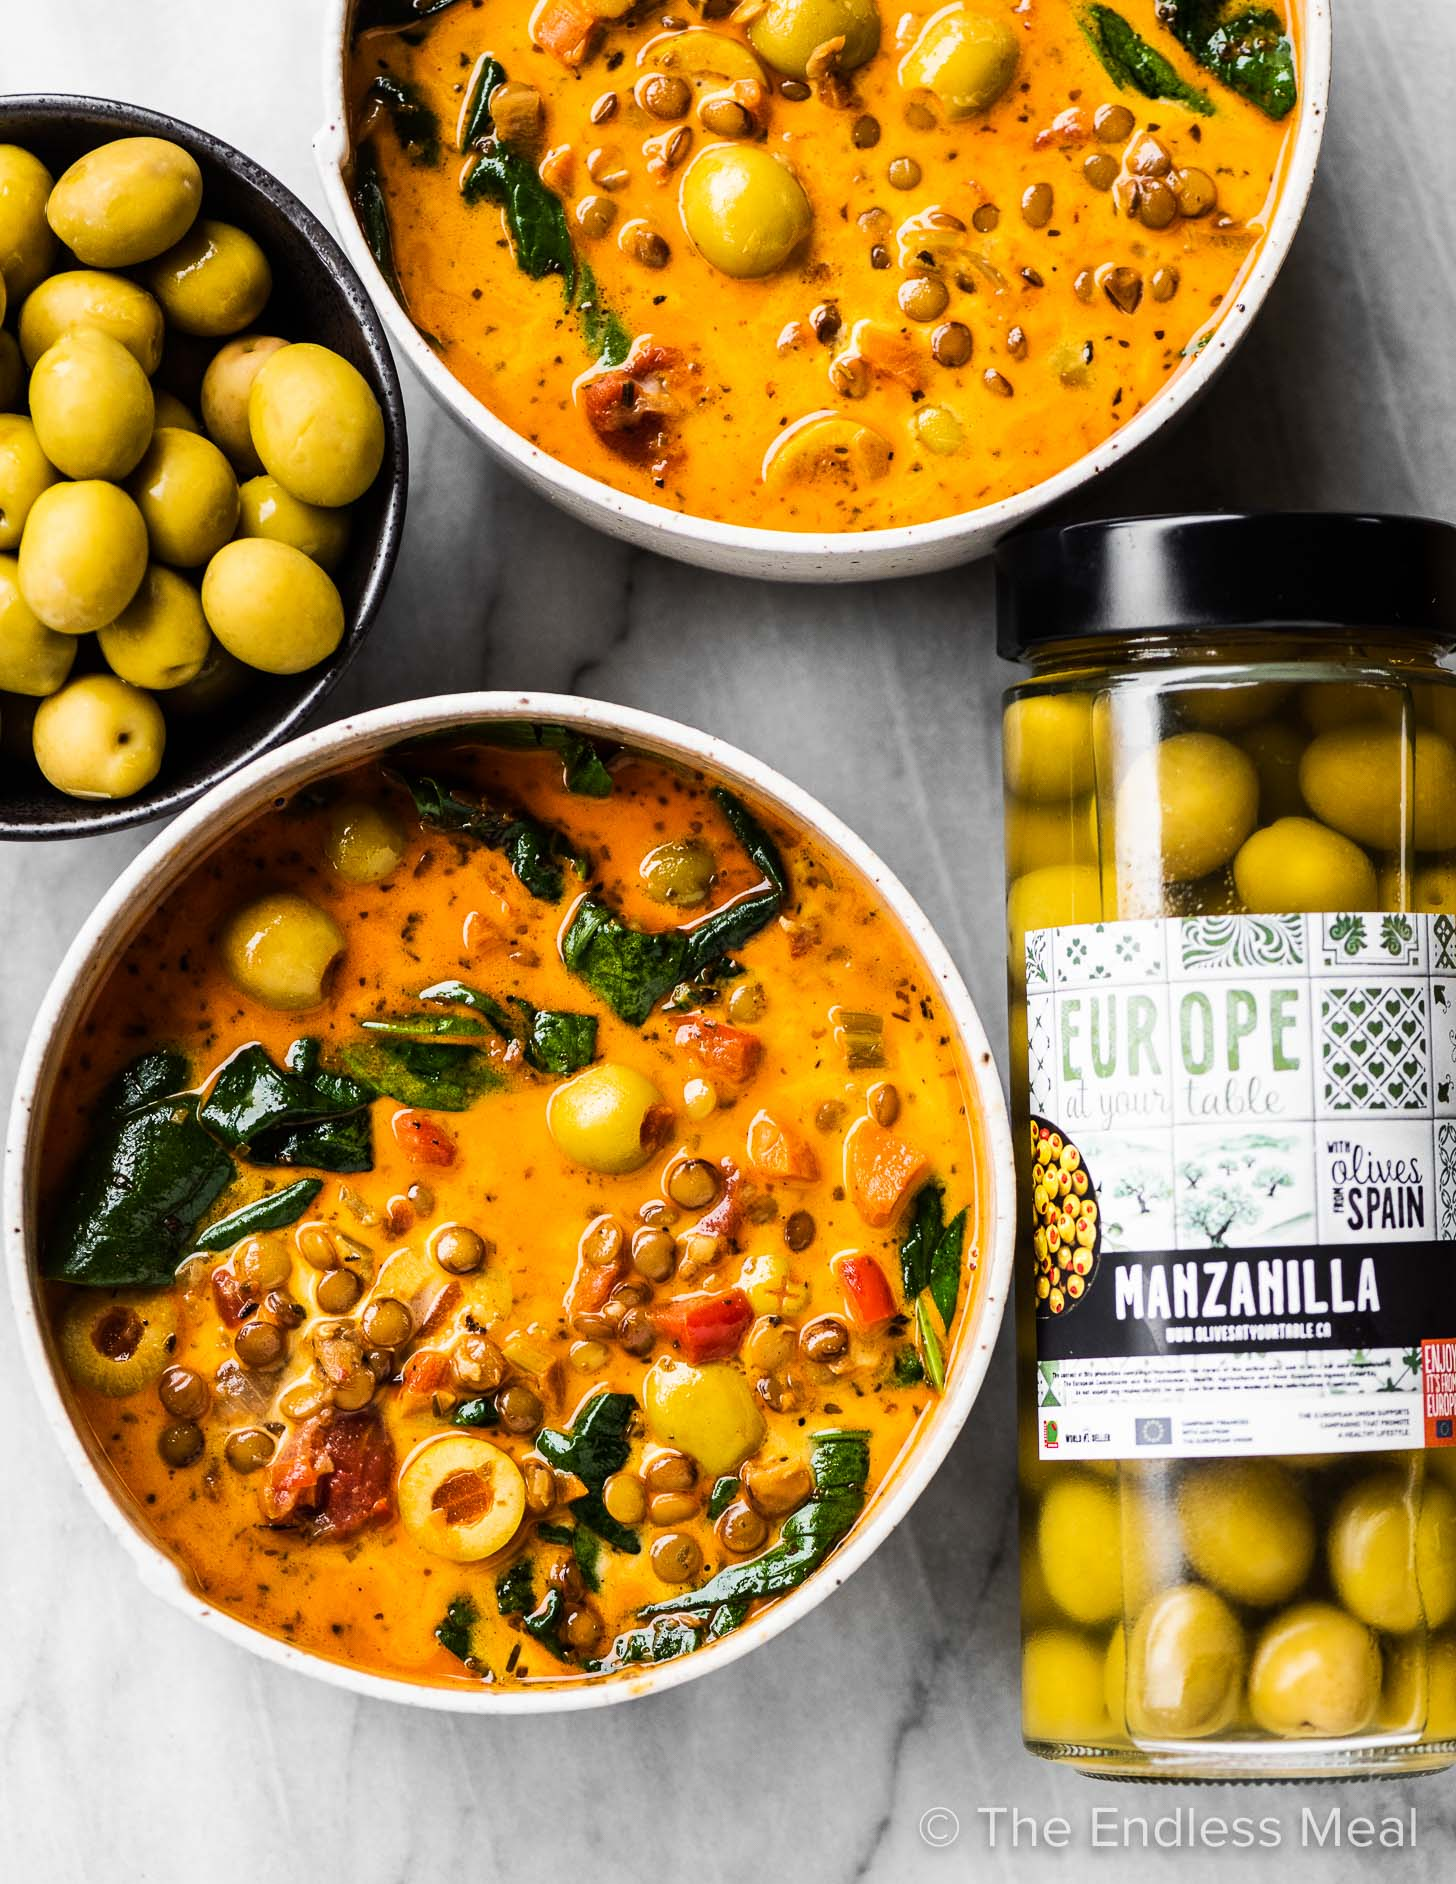 A jar of European olives next to bowls of soup.